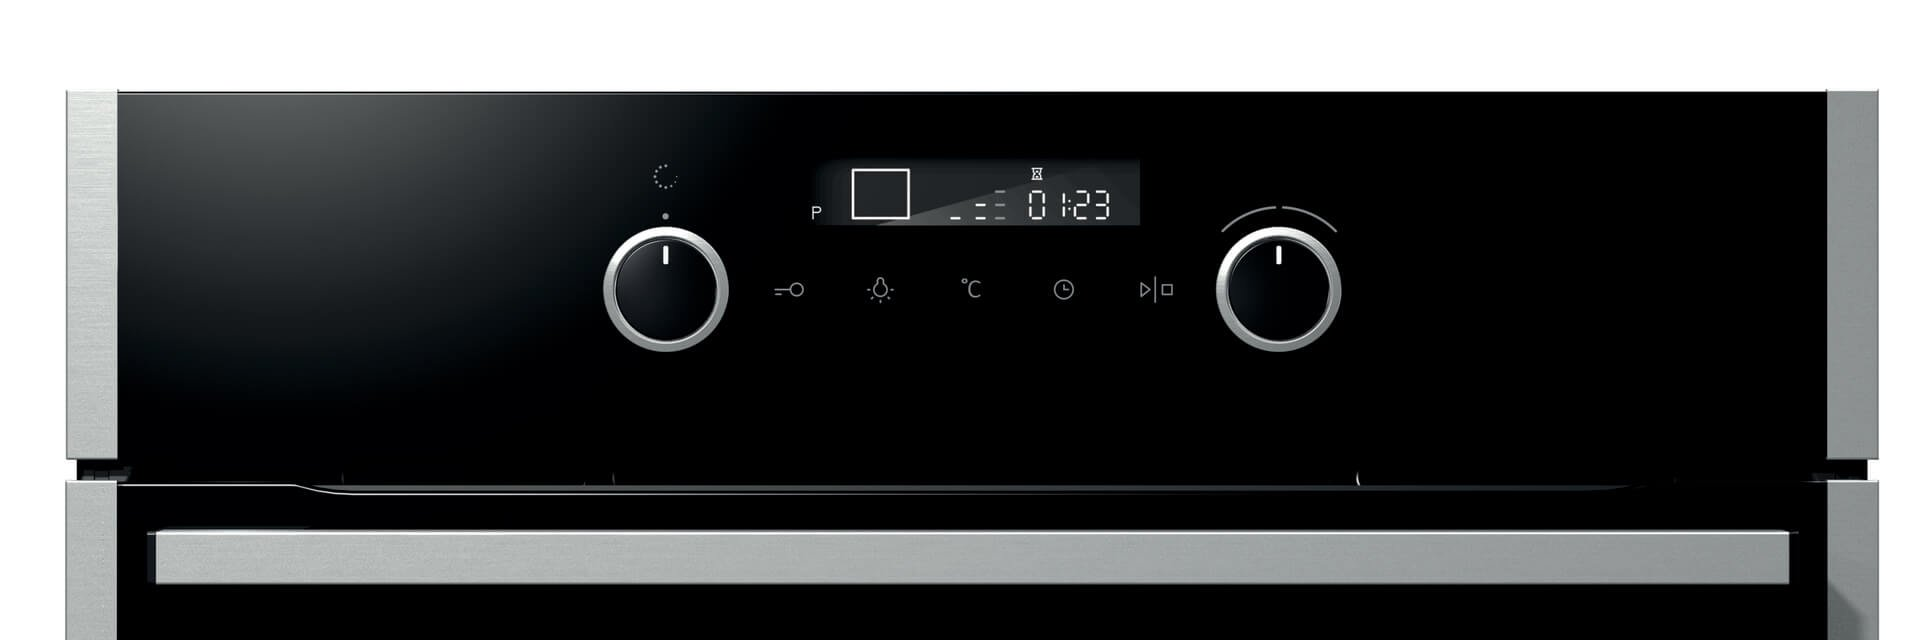 Gorenje BOP647A12XG 60cm Pyrolytic Electric Built-In Oven